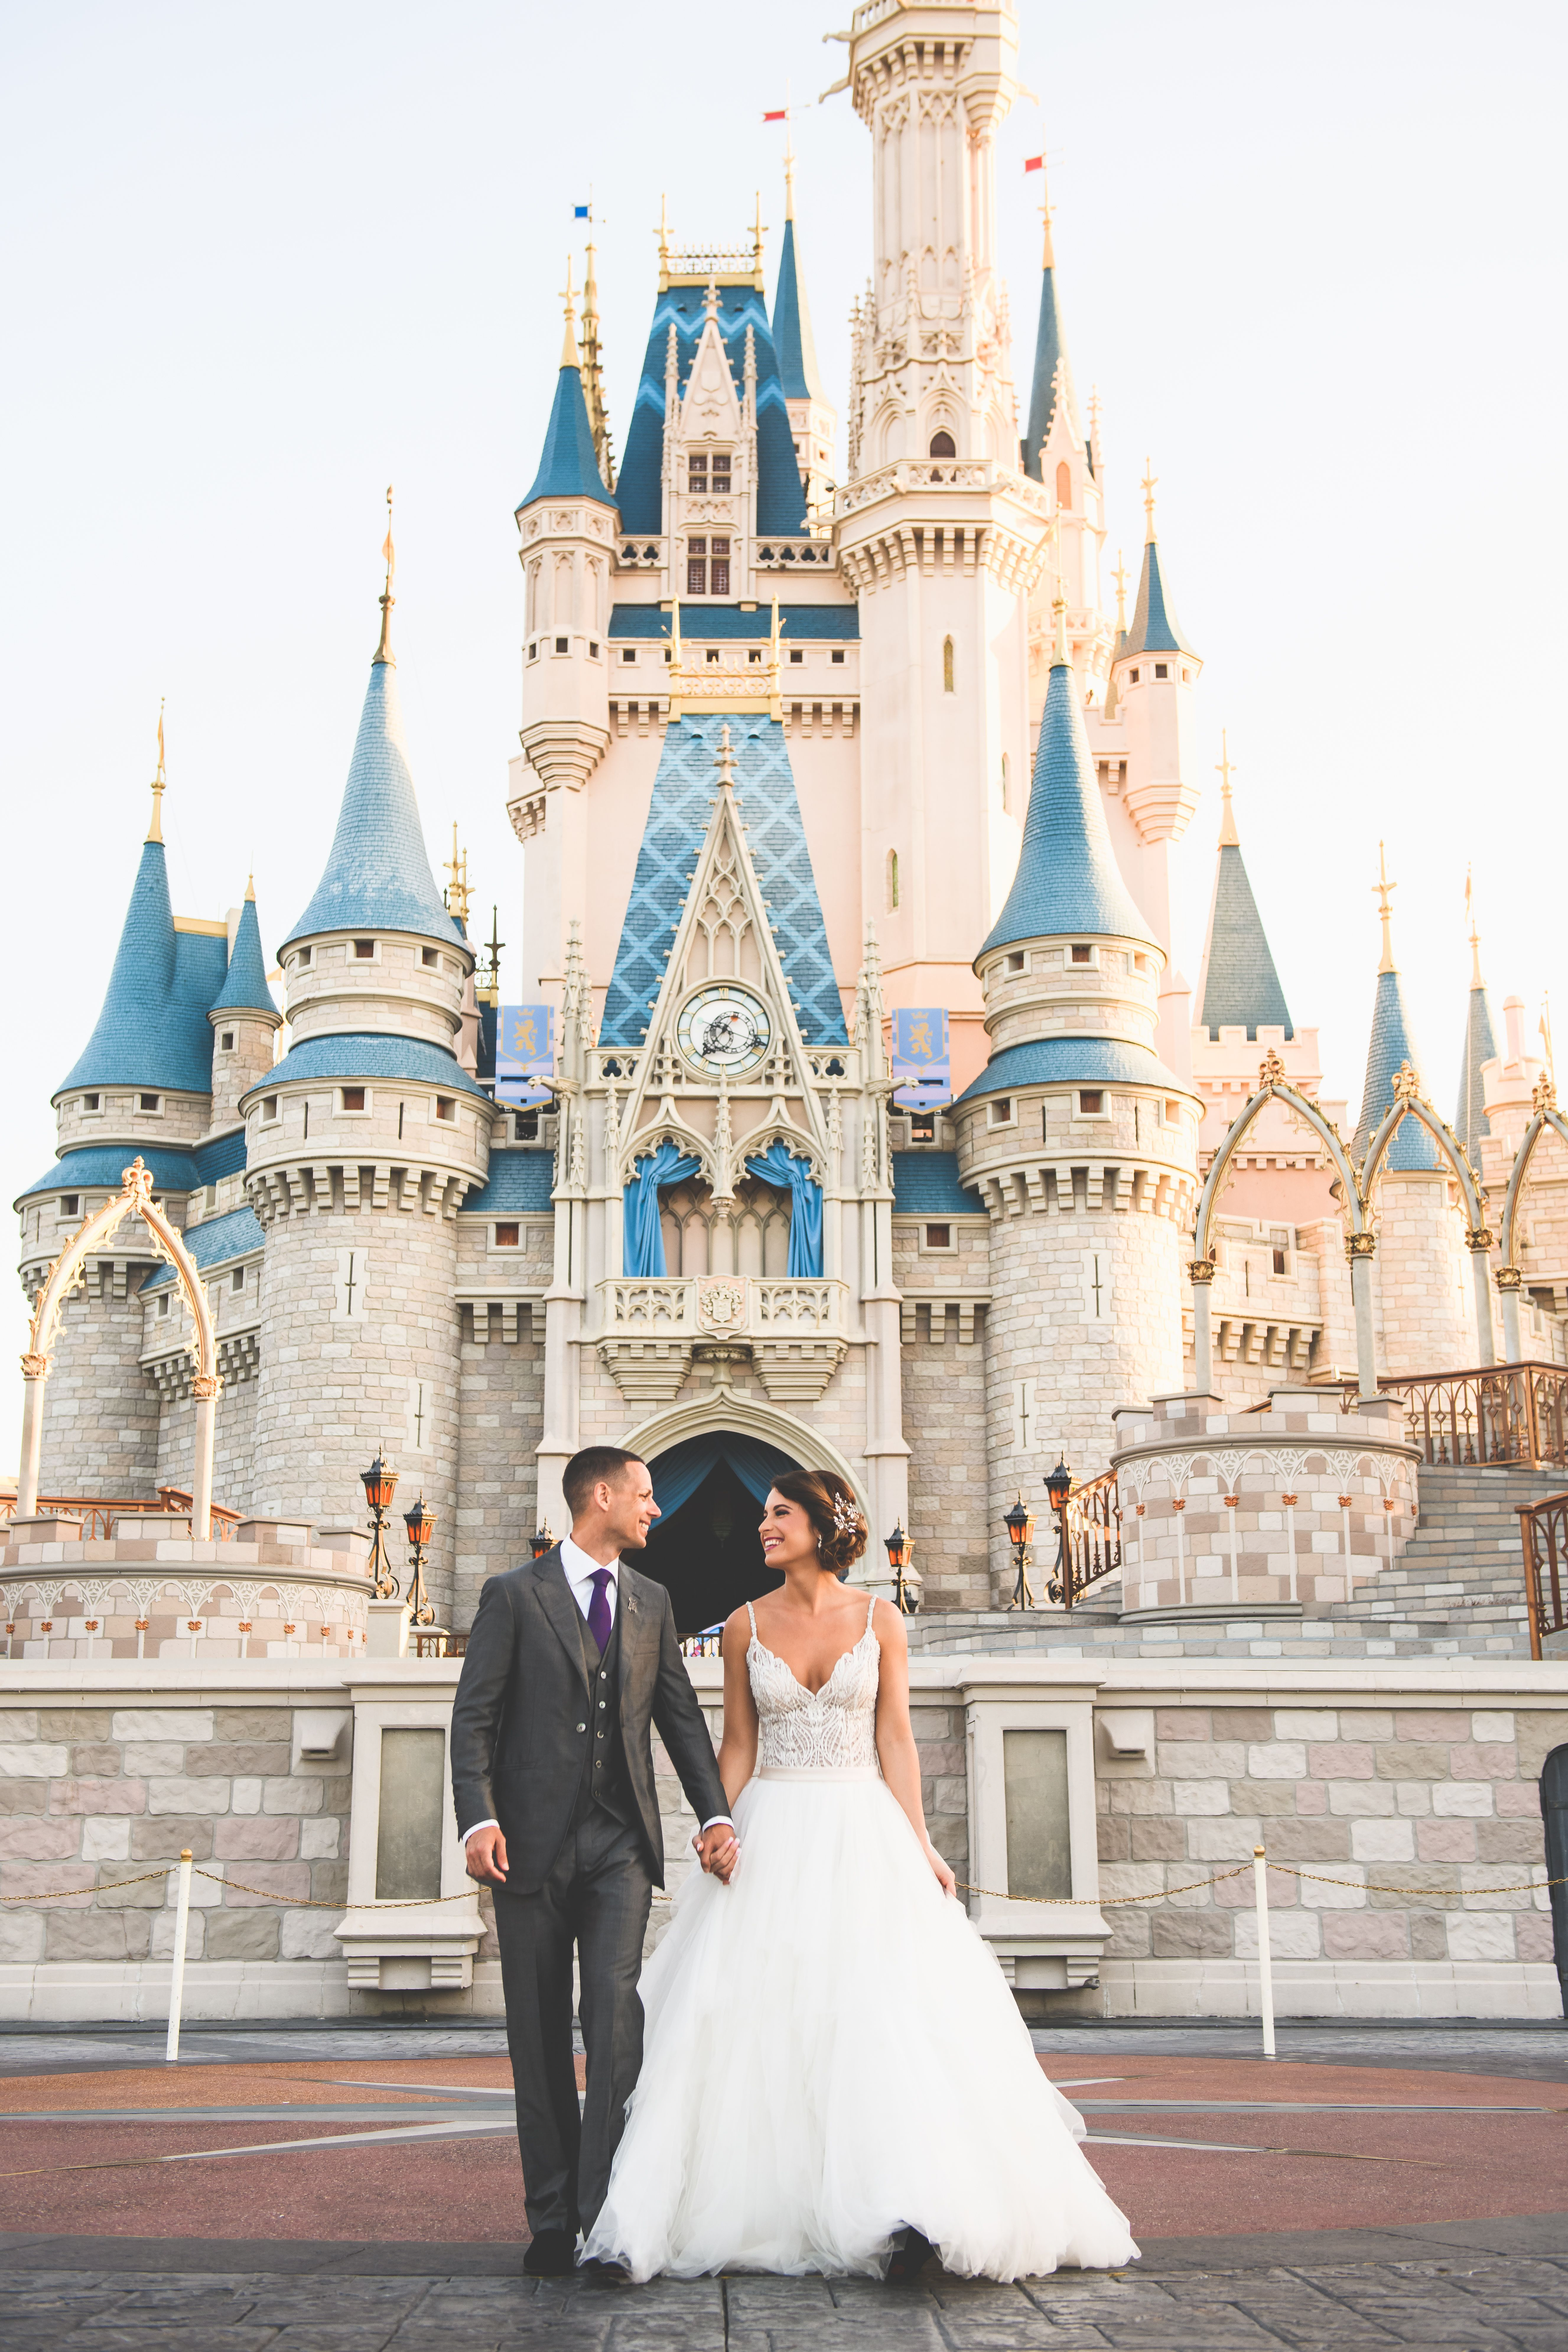 Disney S Fairy Tale Weddings Disney World Wedding Disney Wedding Disney Bride